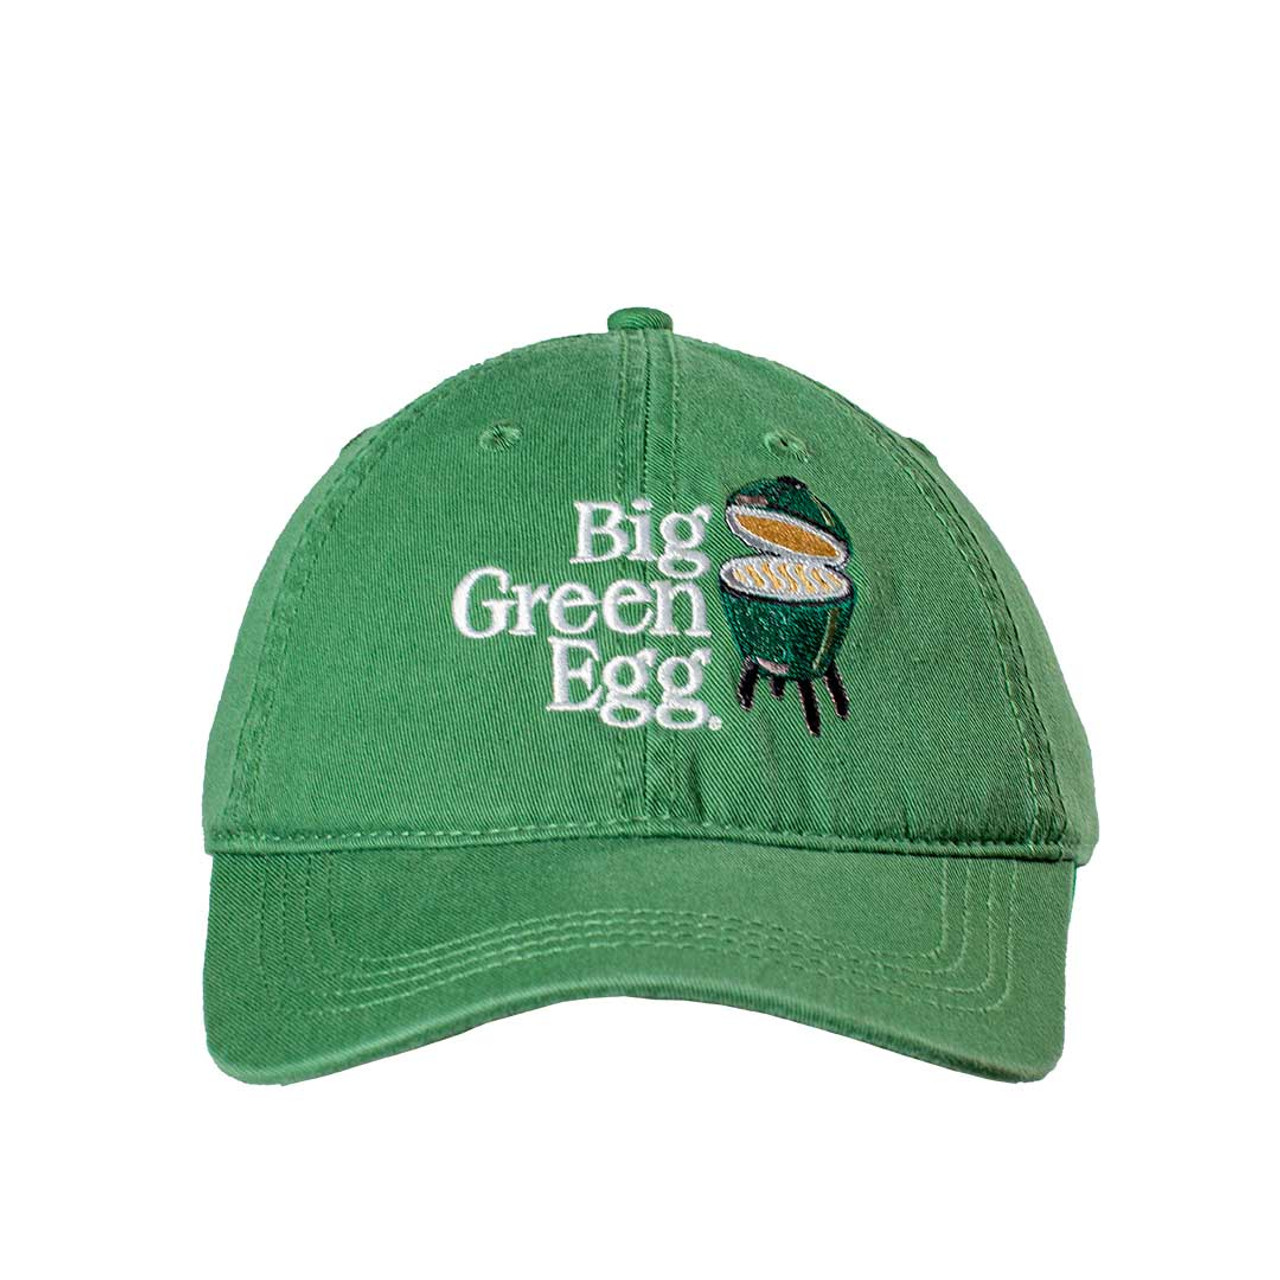 Big Green Egg Relaxed Logo Cap – Green - Front View